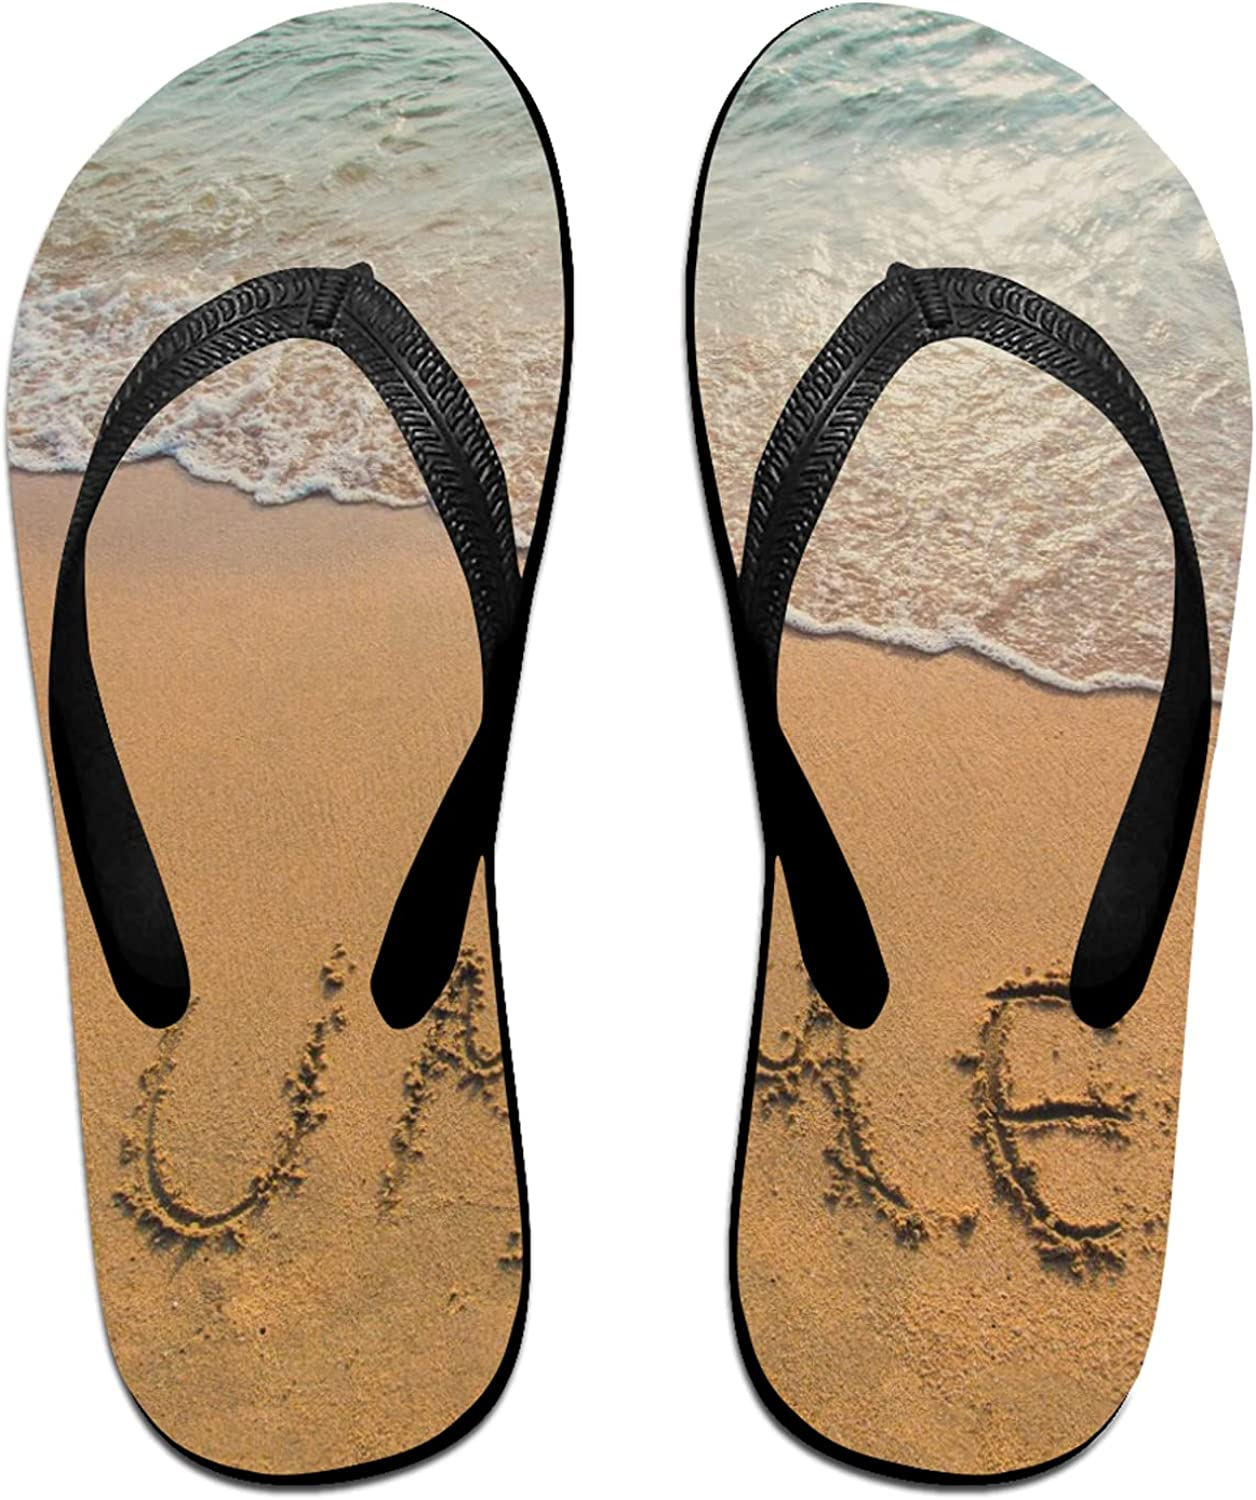 Summer Beach Flip-Flop Sandals New mail Seattle Mall order Me Slippers for